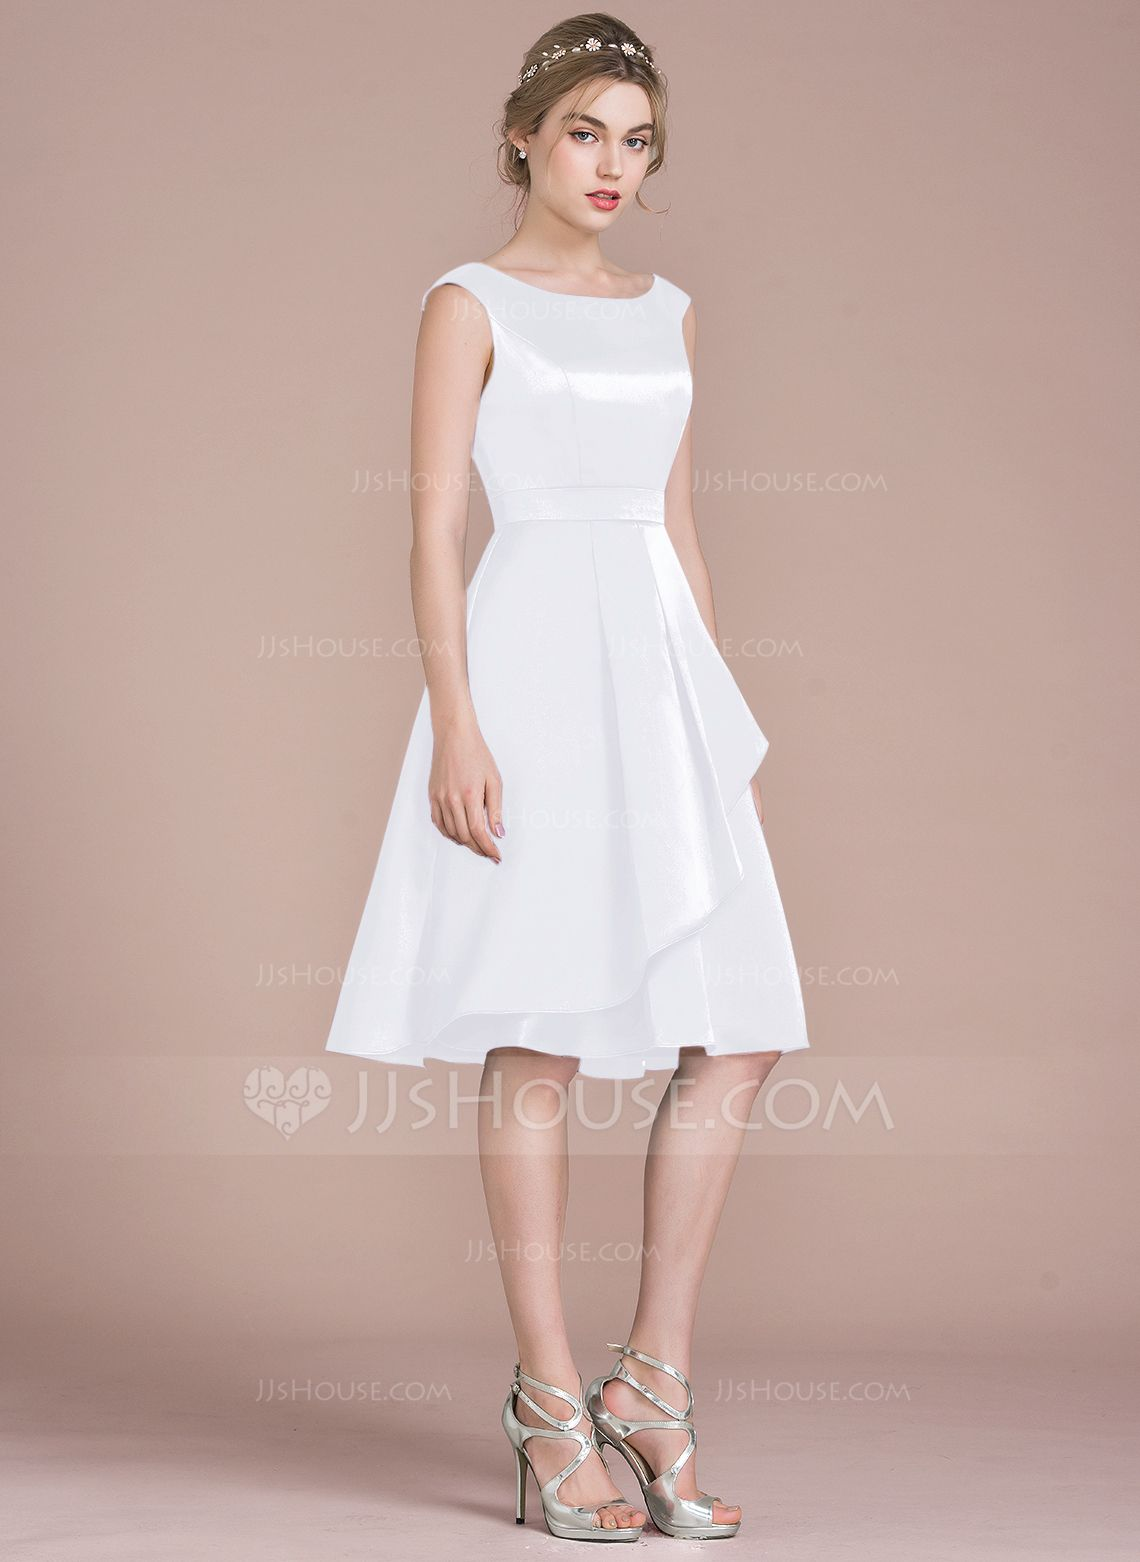 Fashion dress for wedding party  JJsHouse as the global leading online retailer provides a large